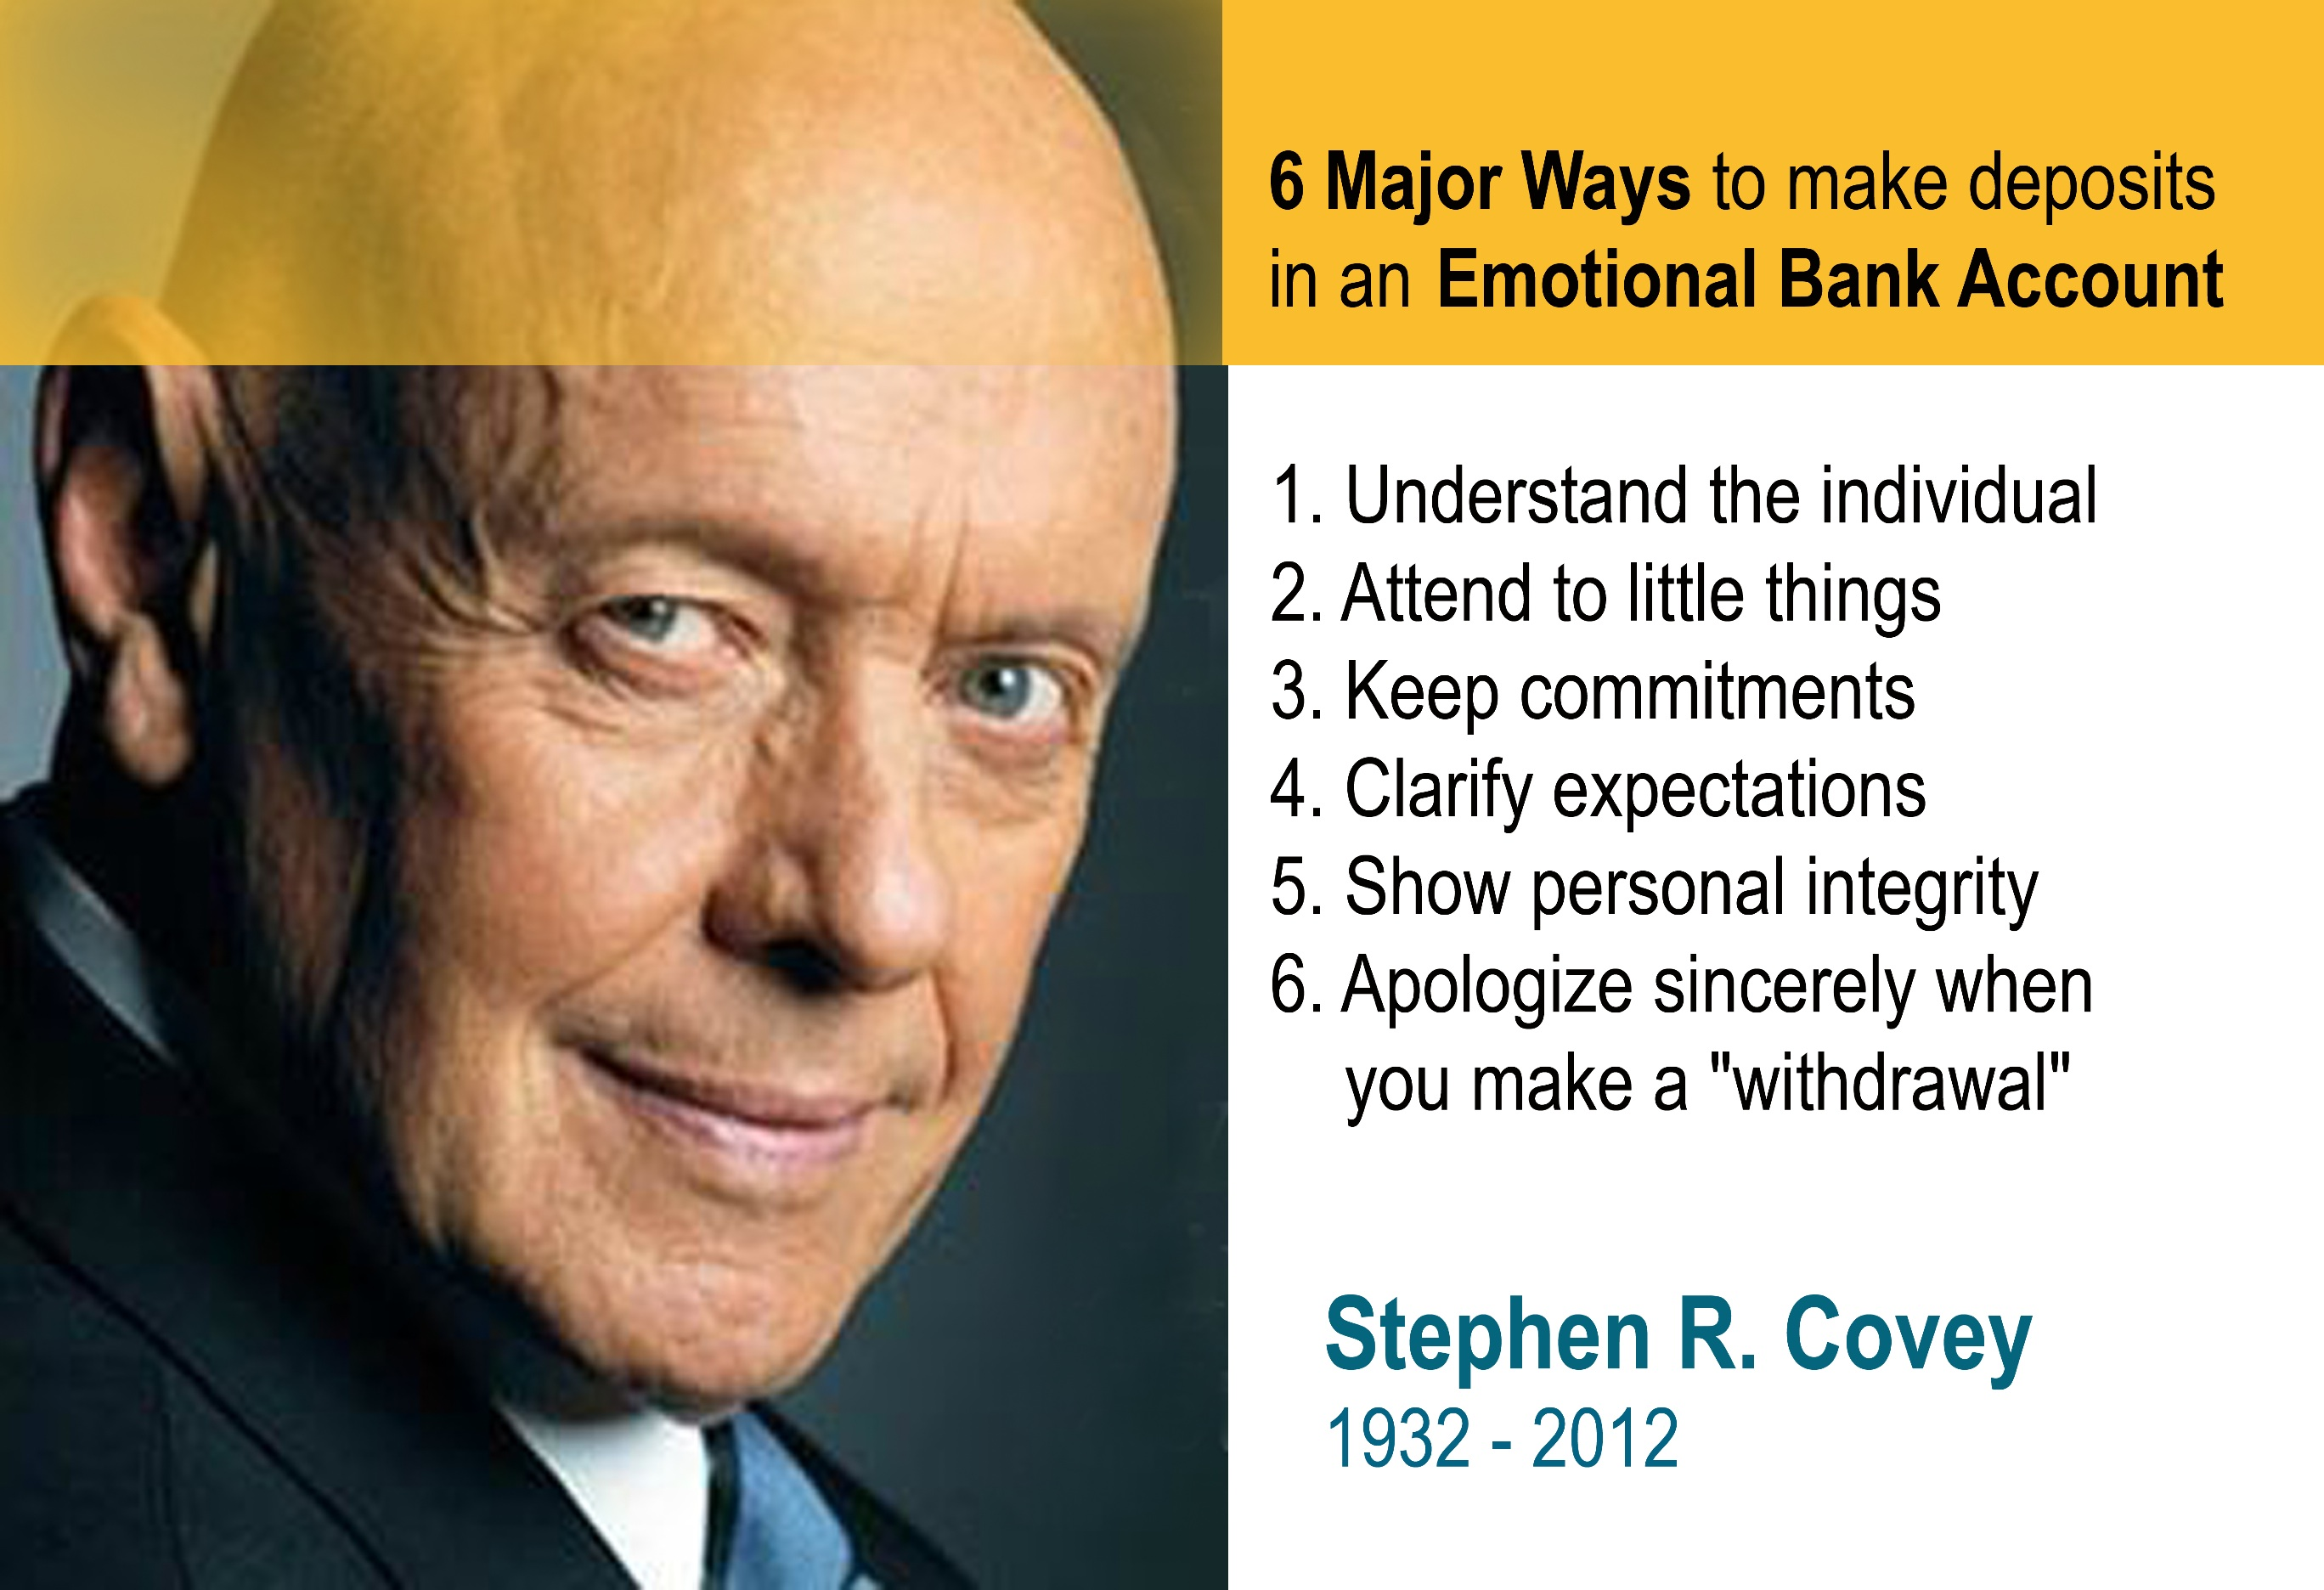 Stephen Covey's quote #7